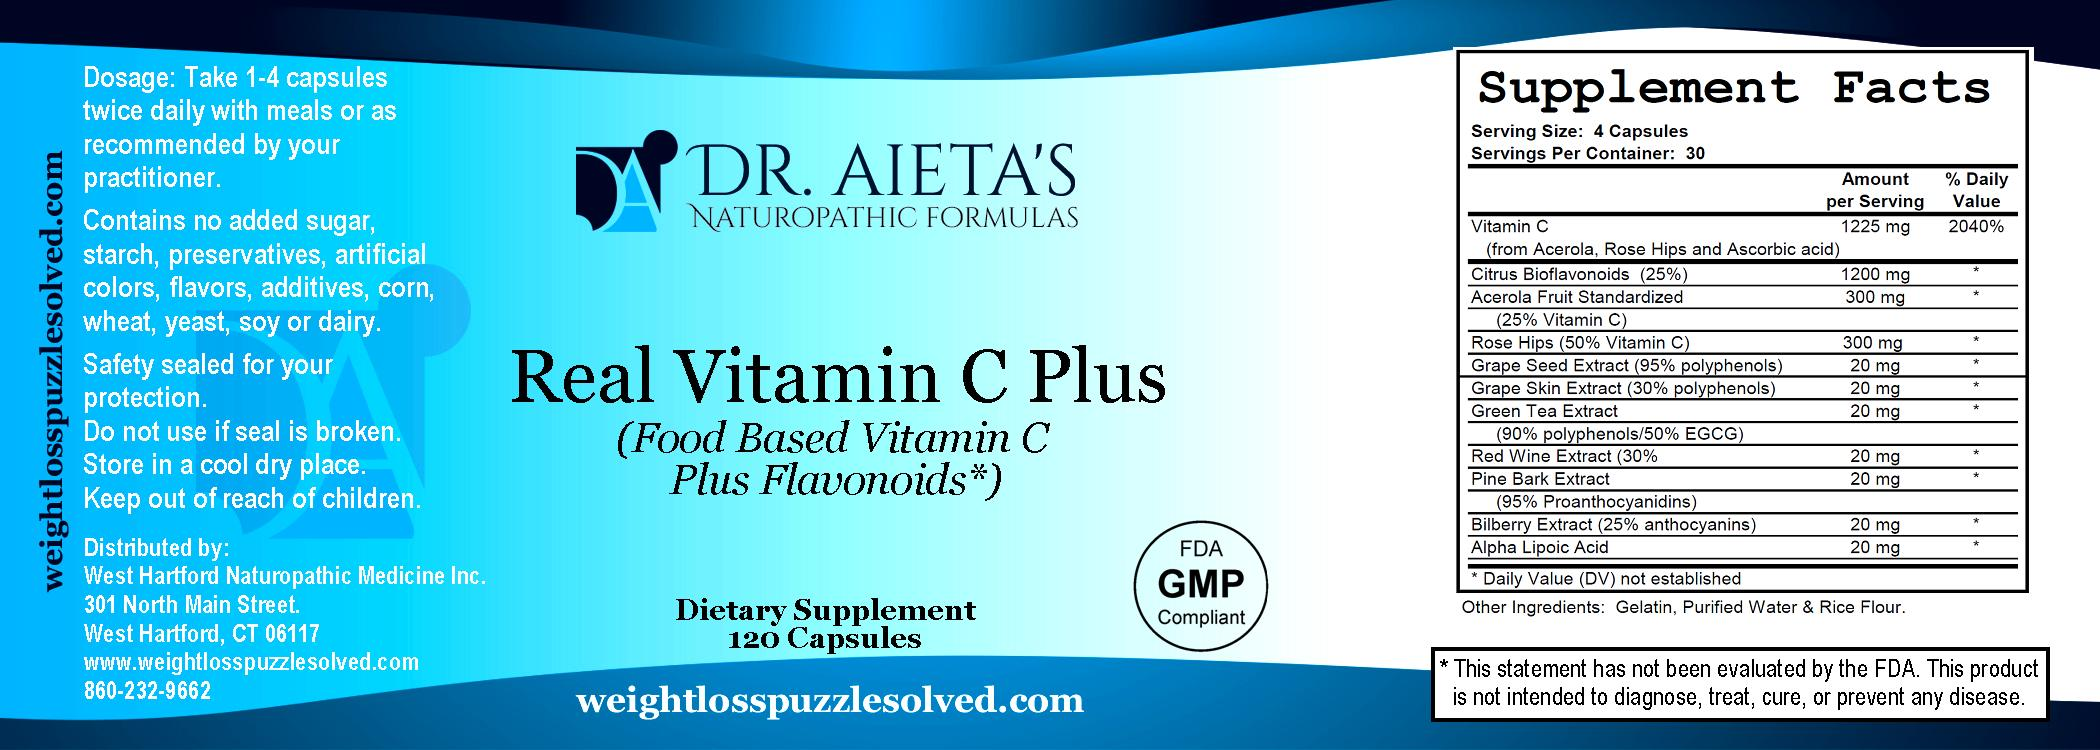 Real Vitamin C Plus (Food Based Vitamin C Plus Flavonoids)